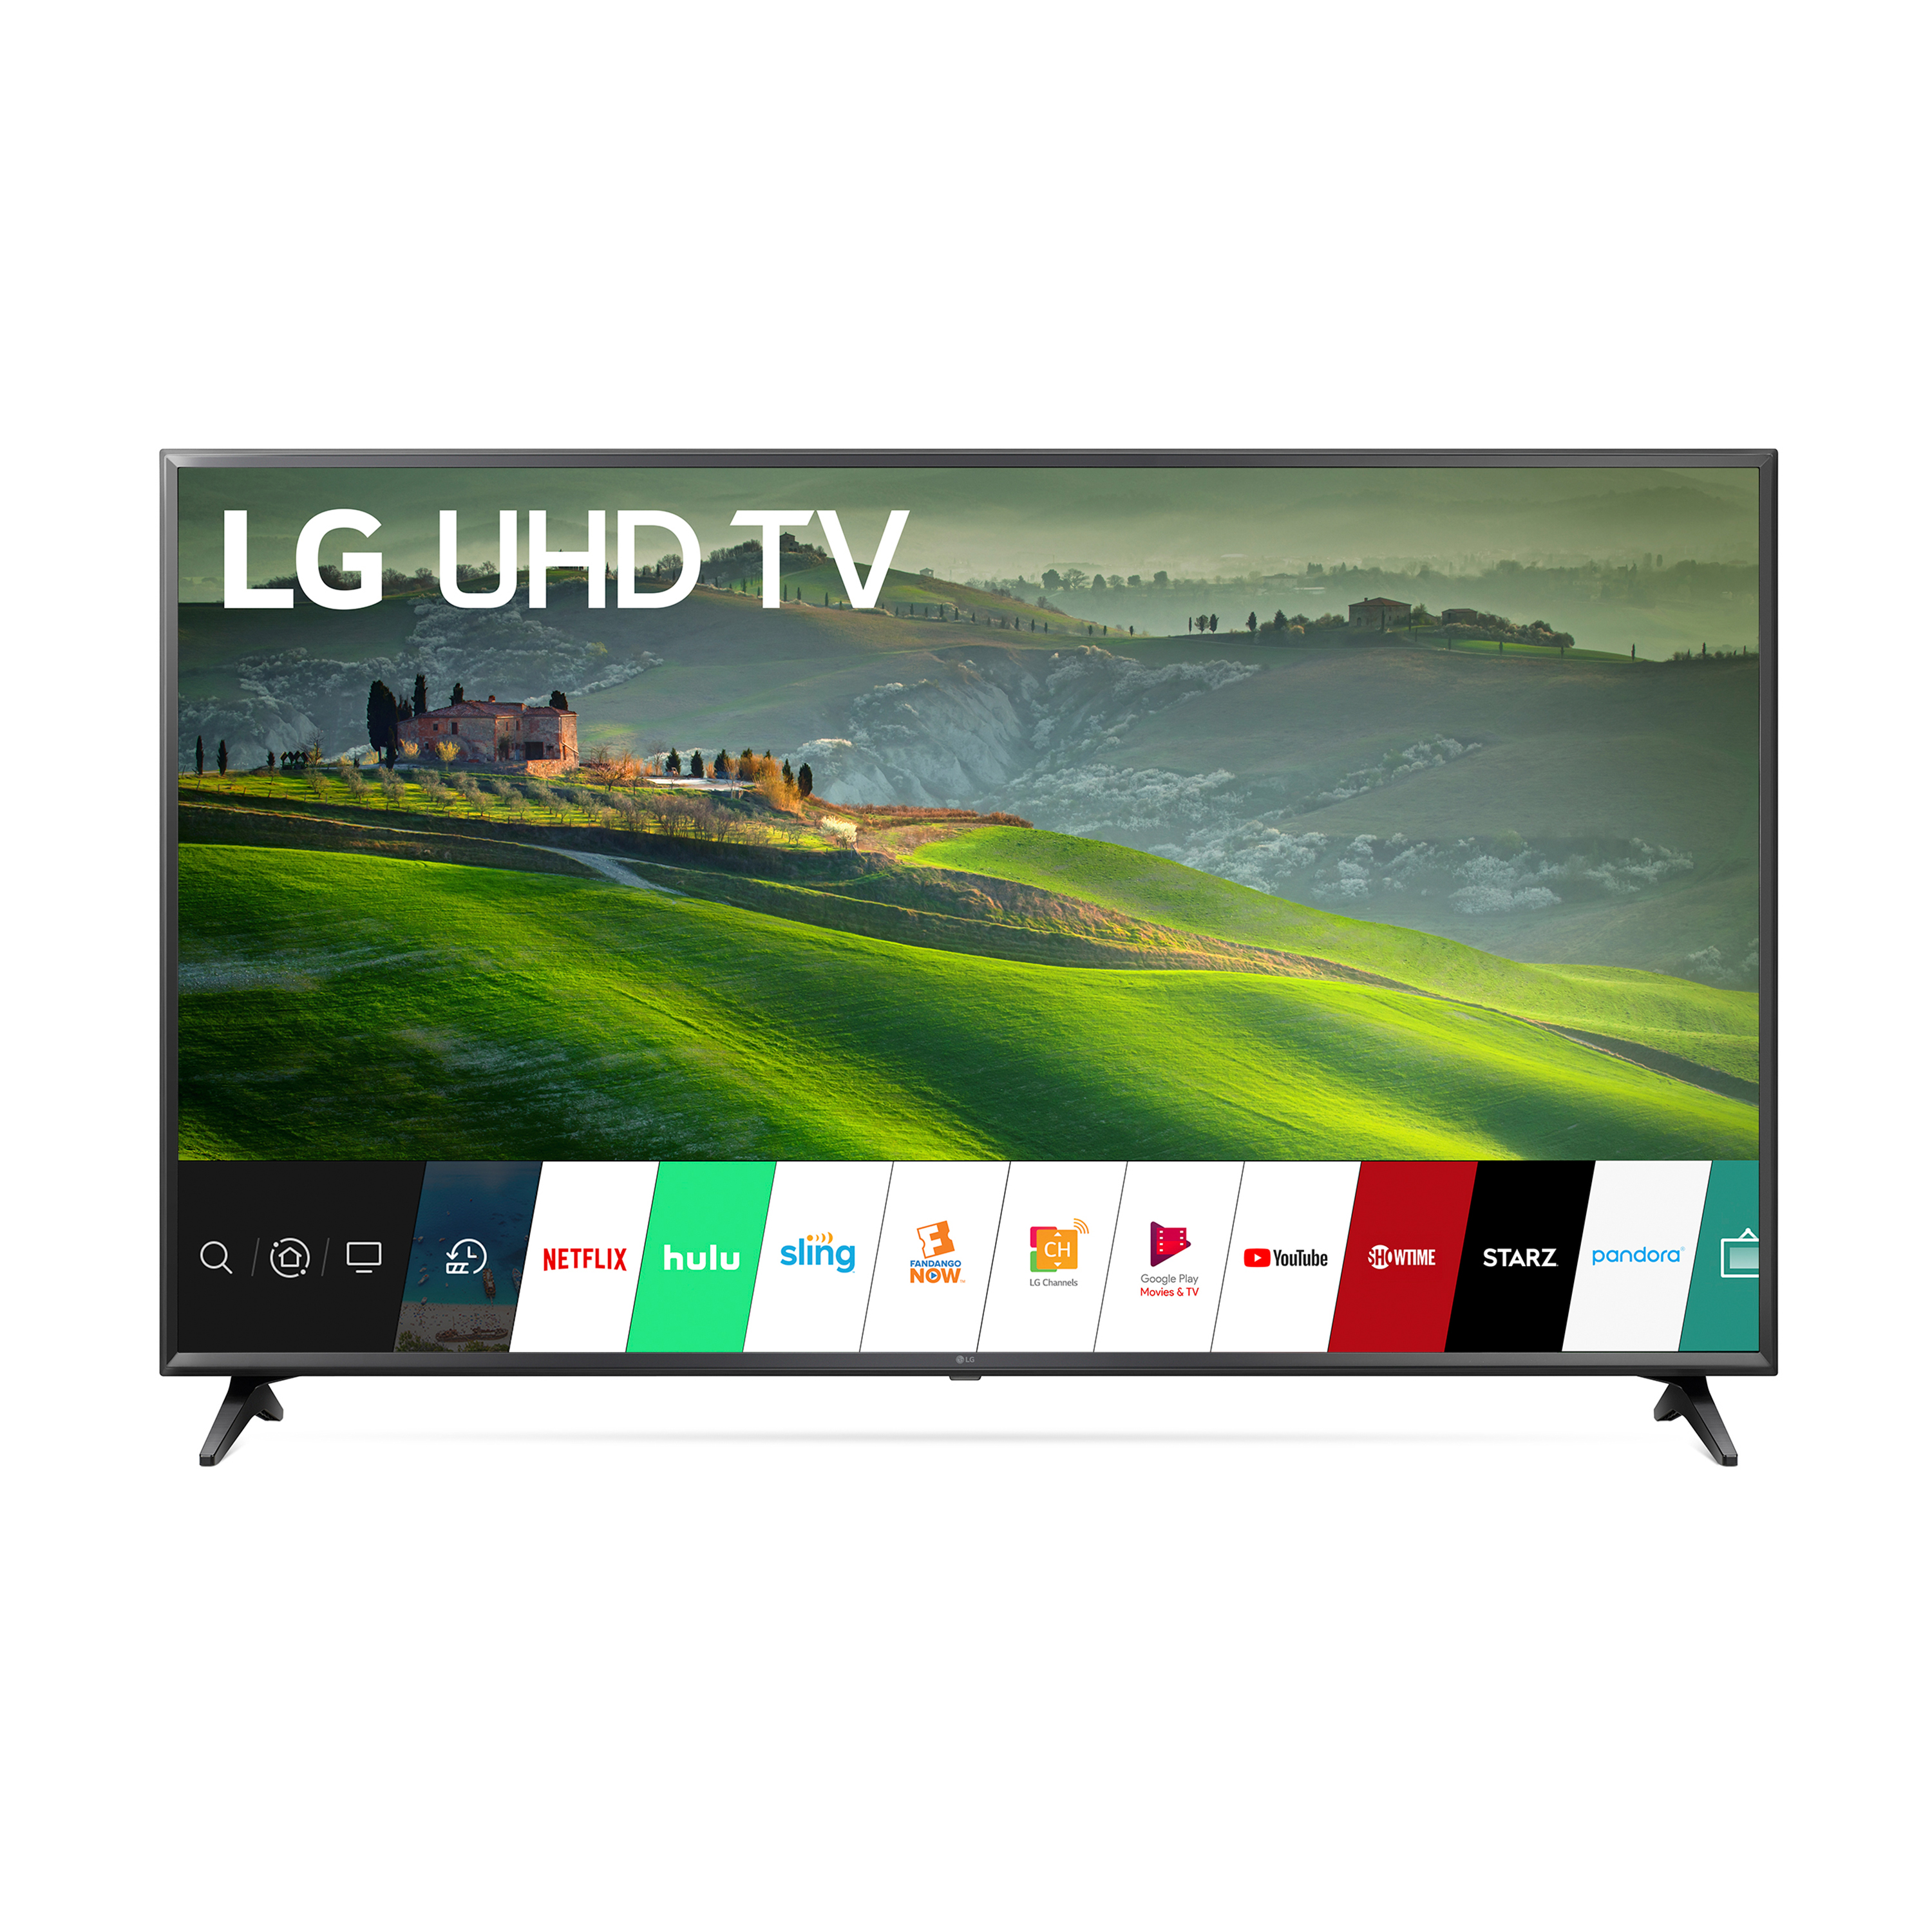 "LG 65UK6090 65"" 4K Smart LED UHDTV"